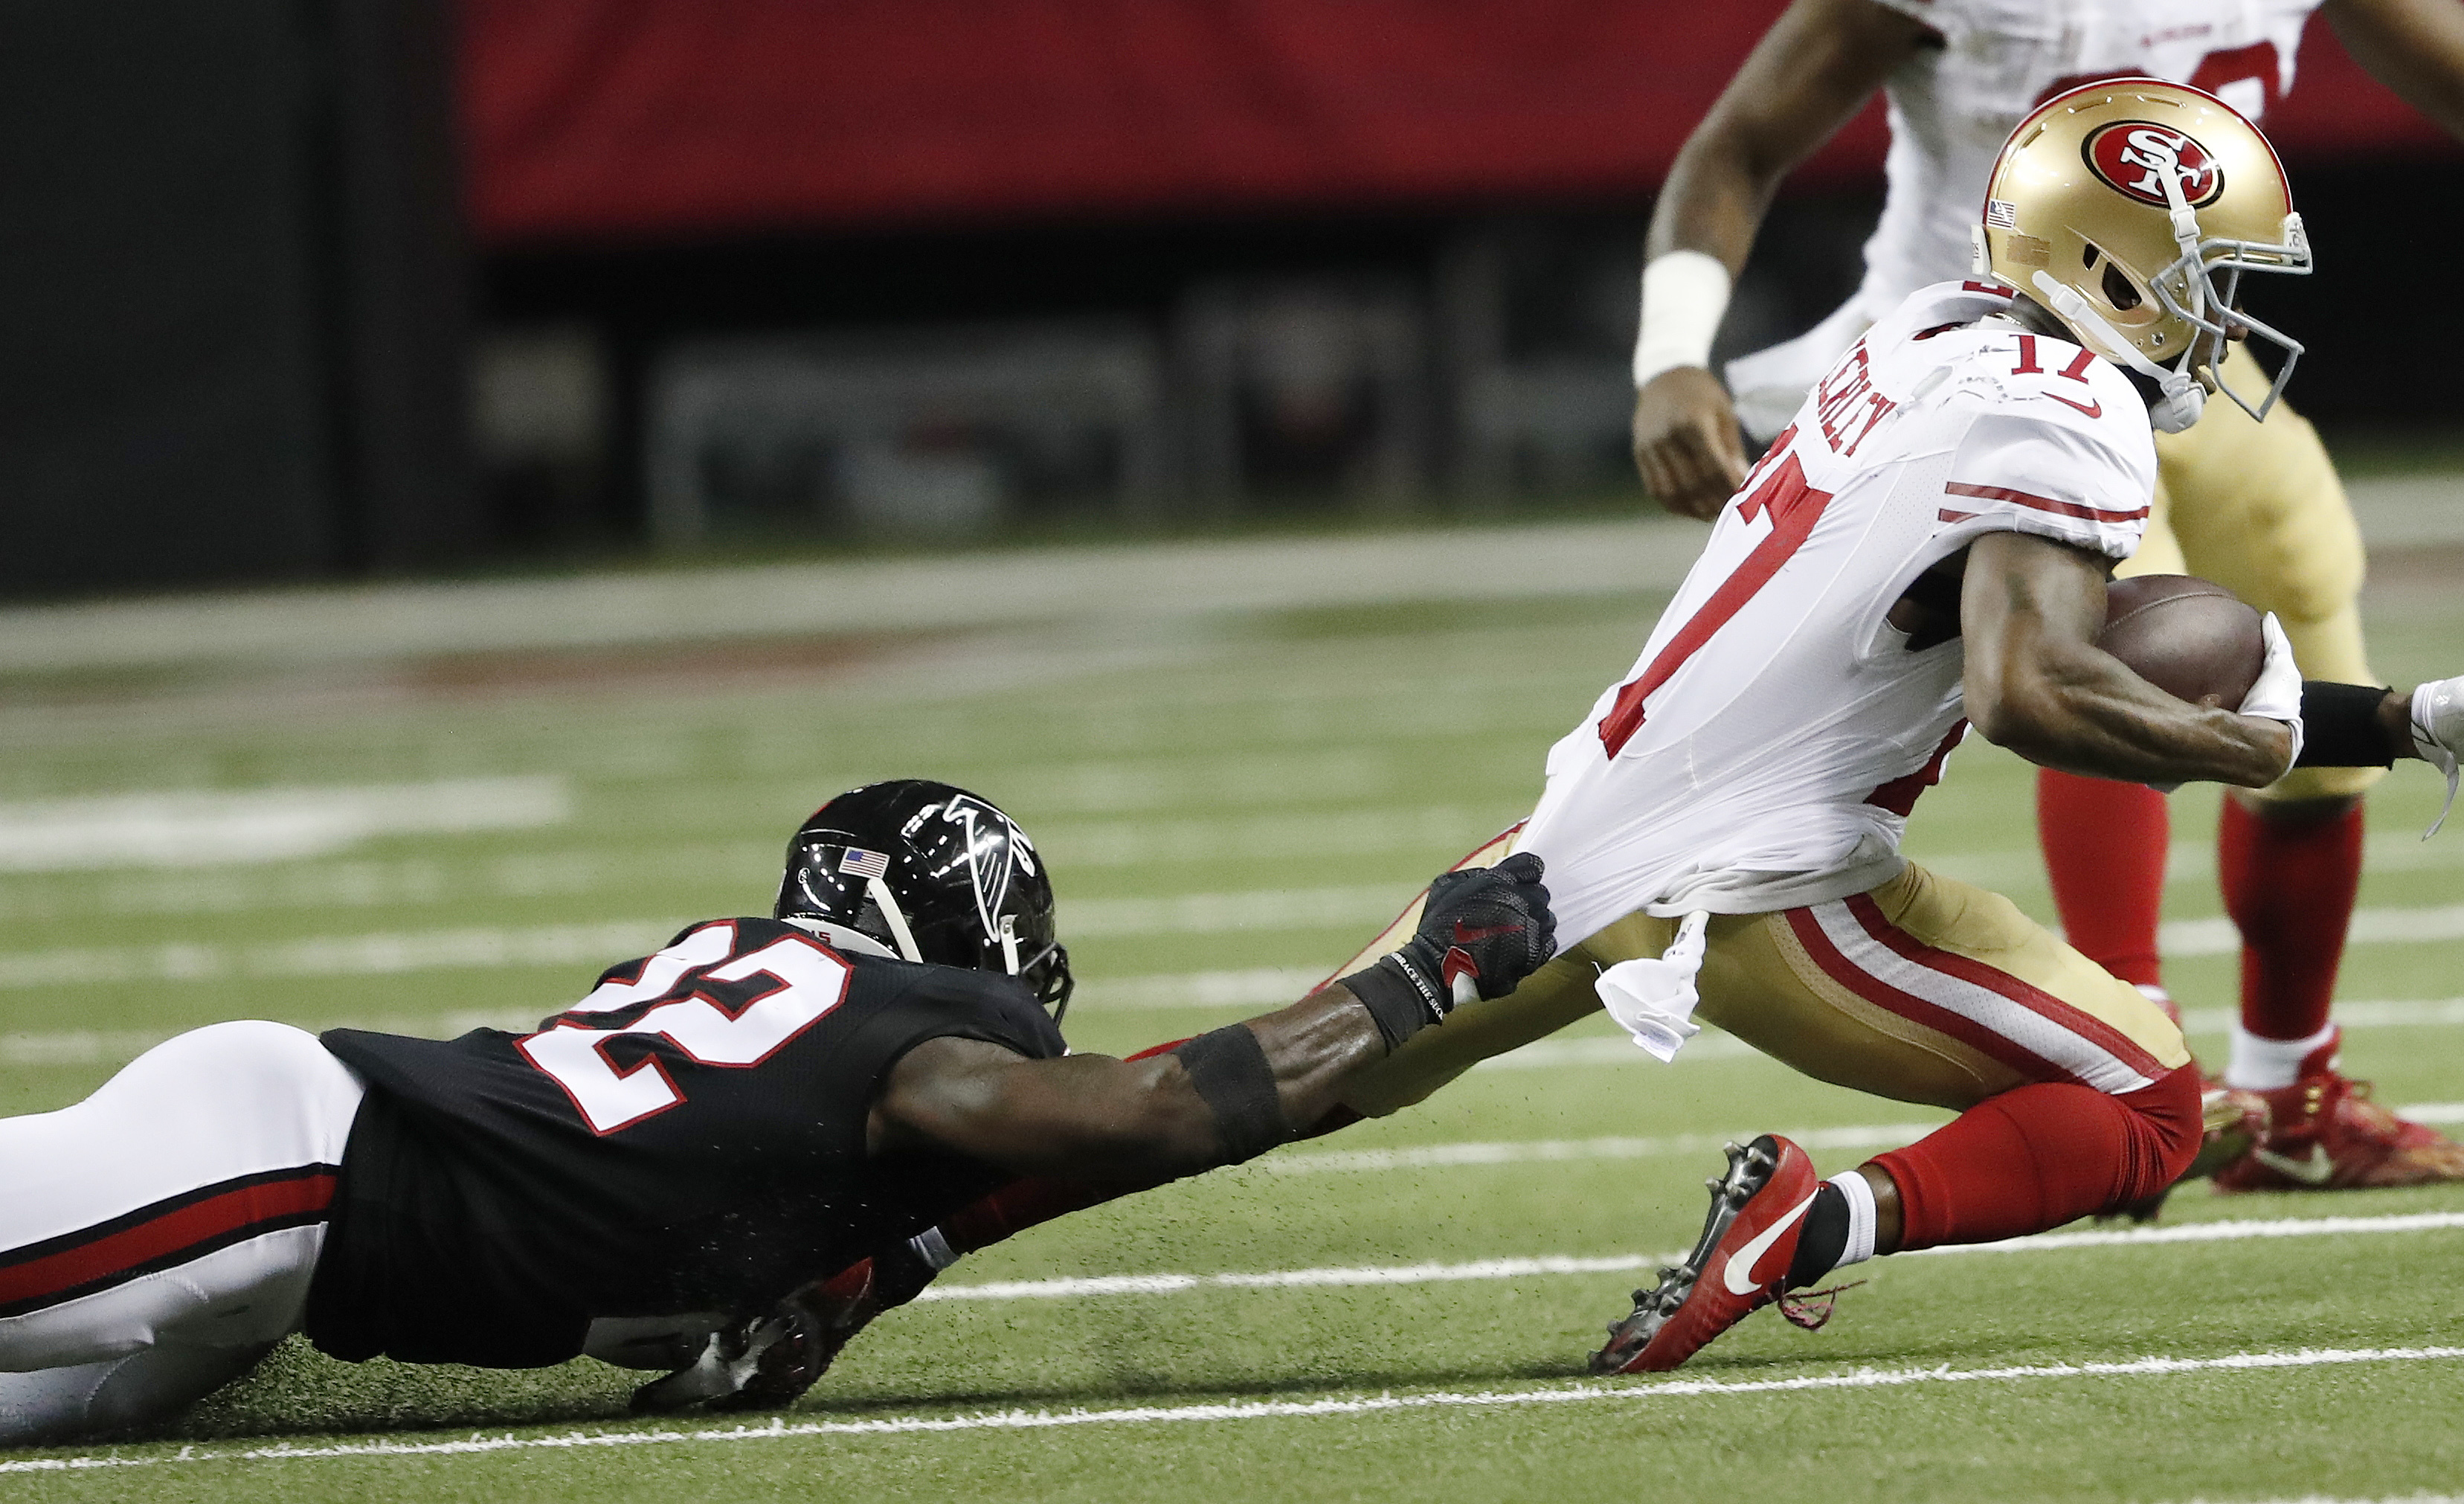 Atlanta Falcons strong safety Keanu Neal (22) tackles San Francisco 49ers wide receiver Jeremy Kerley (17) during the second half of an NFL football game, Sunday, Dec. 18, 2016, in Atlanta. (AP Photo/John Bazemore)